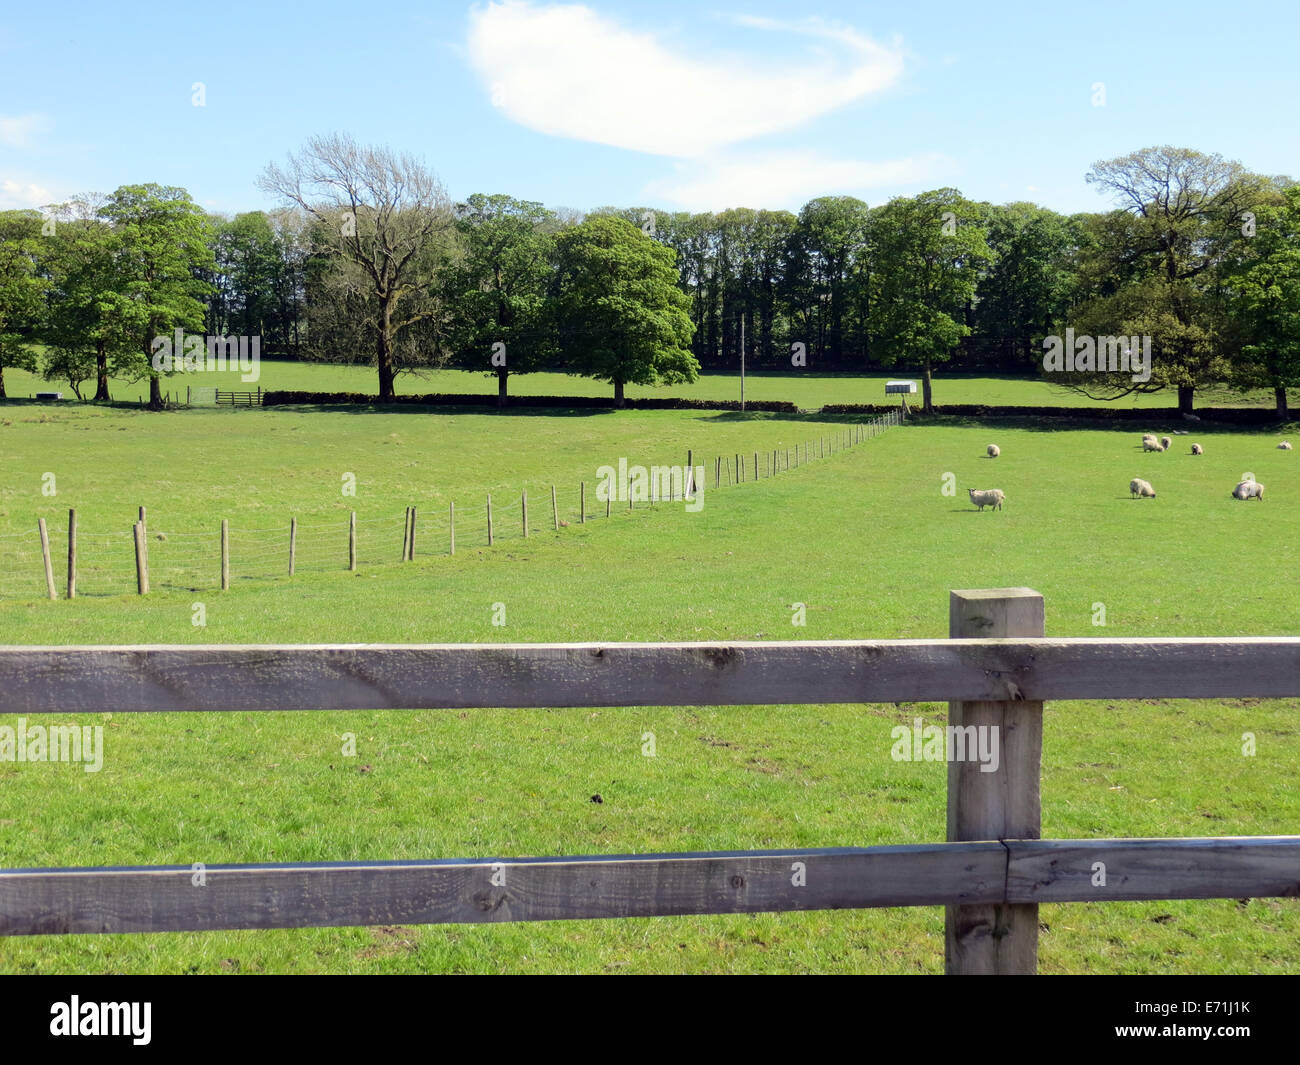 Wooden fence borders field of sheep on farmland in Yorkshire Dales - Stock Image